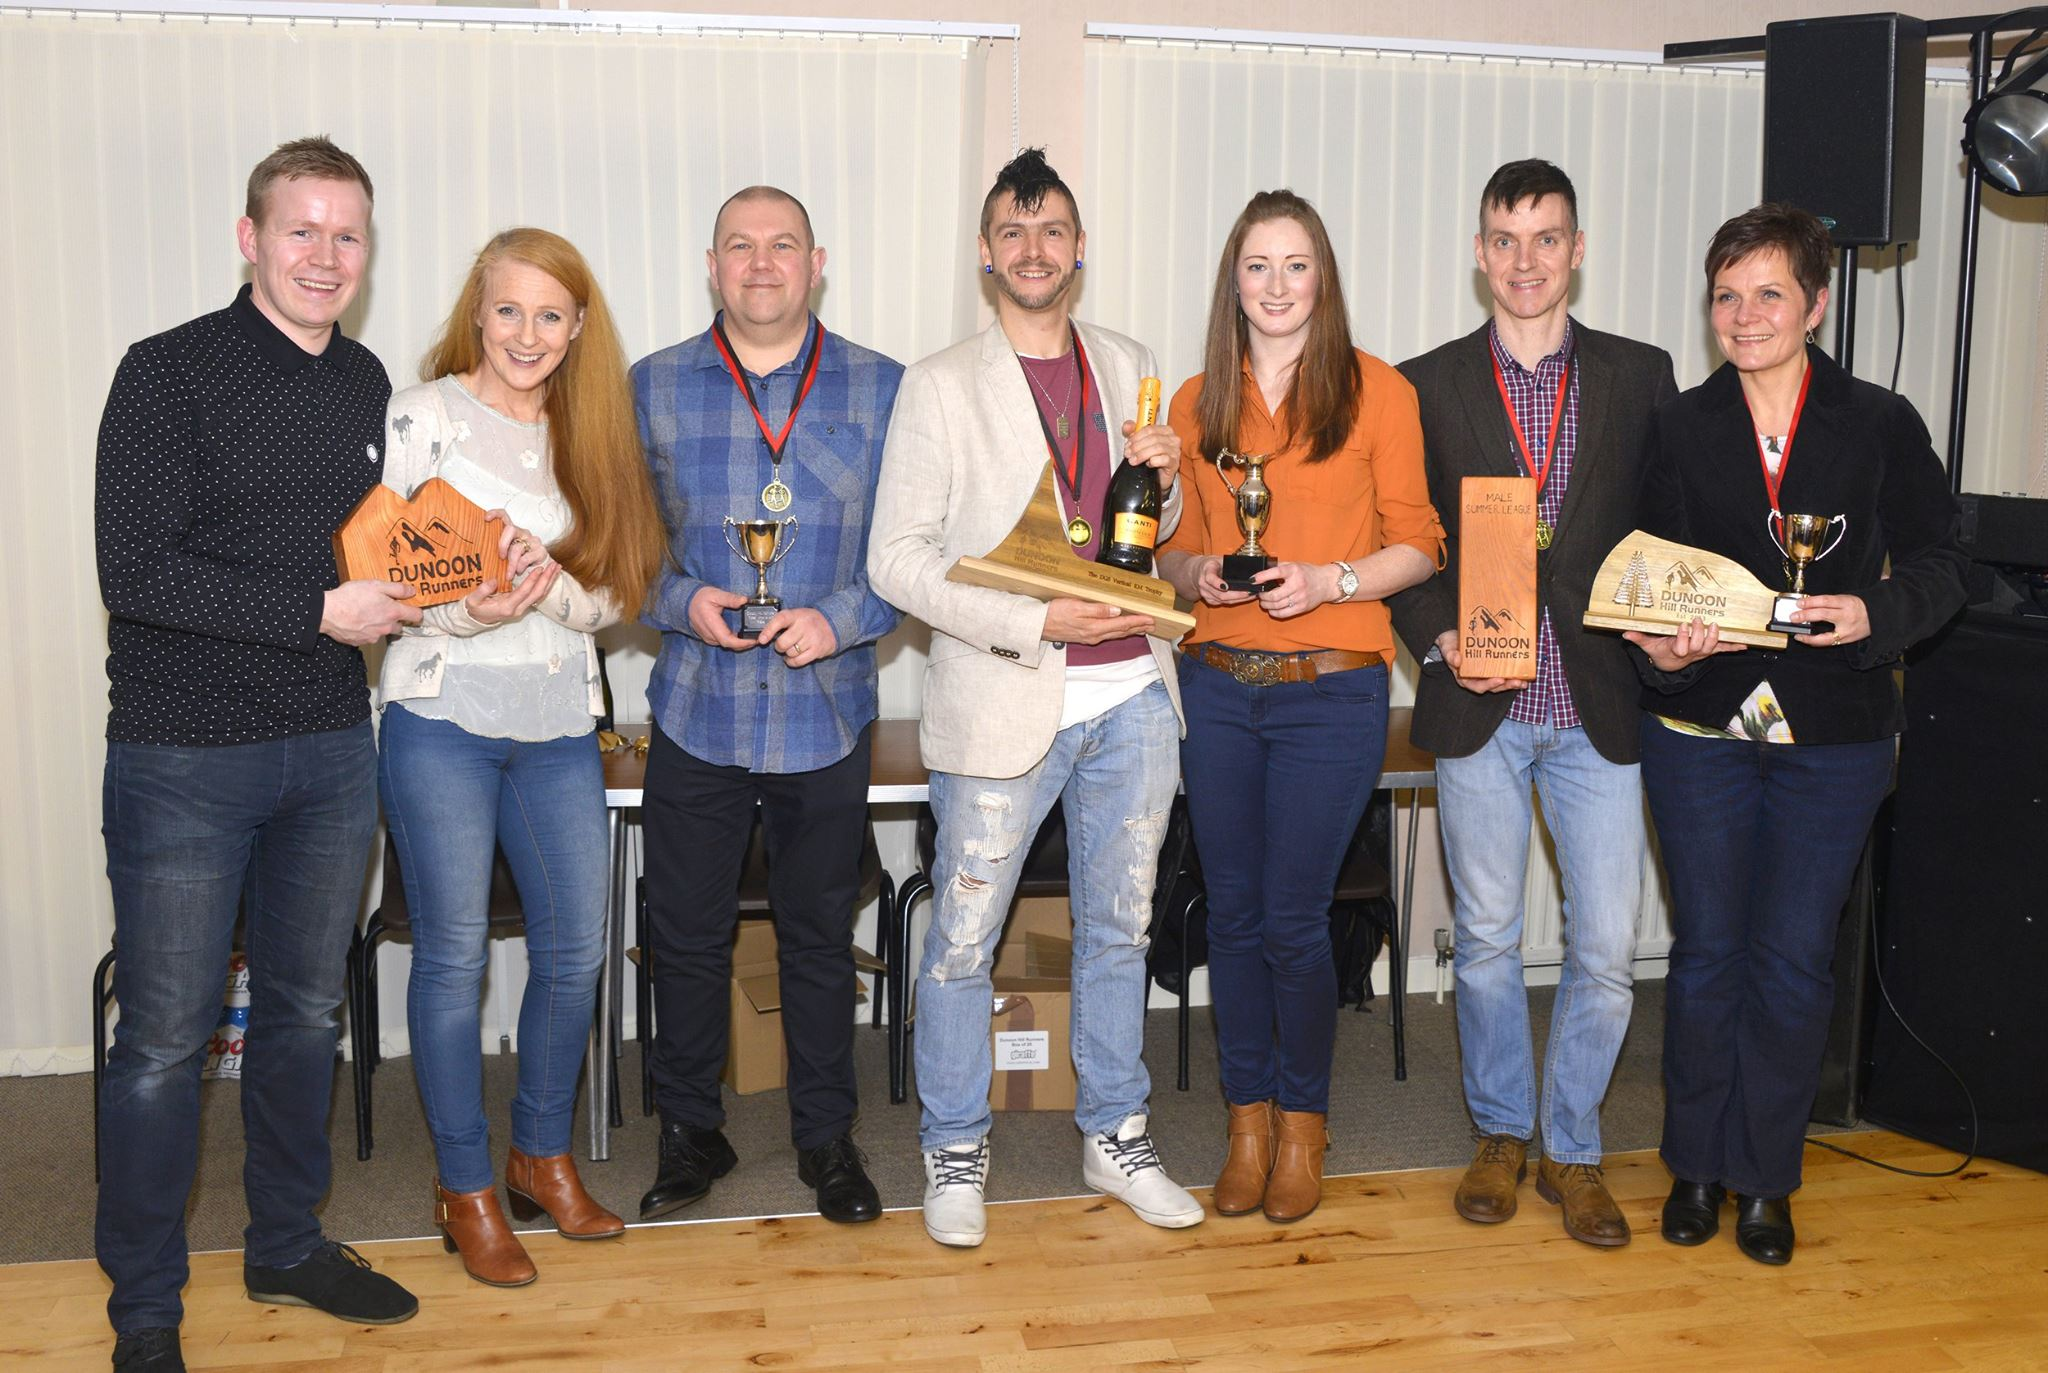 The 2015 Dunoon Hill Runners Trophy Winners